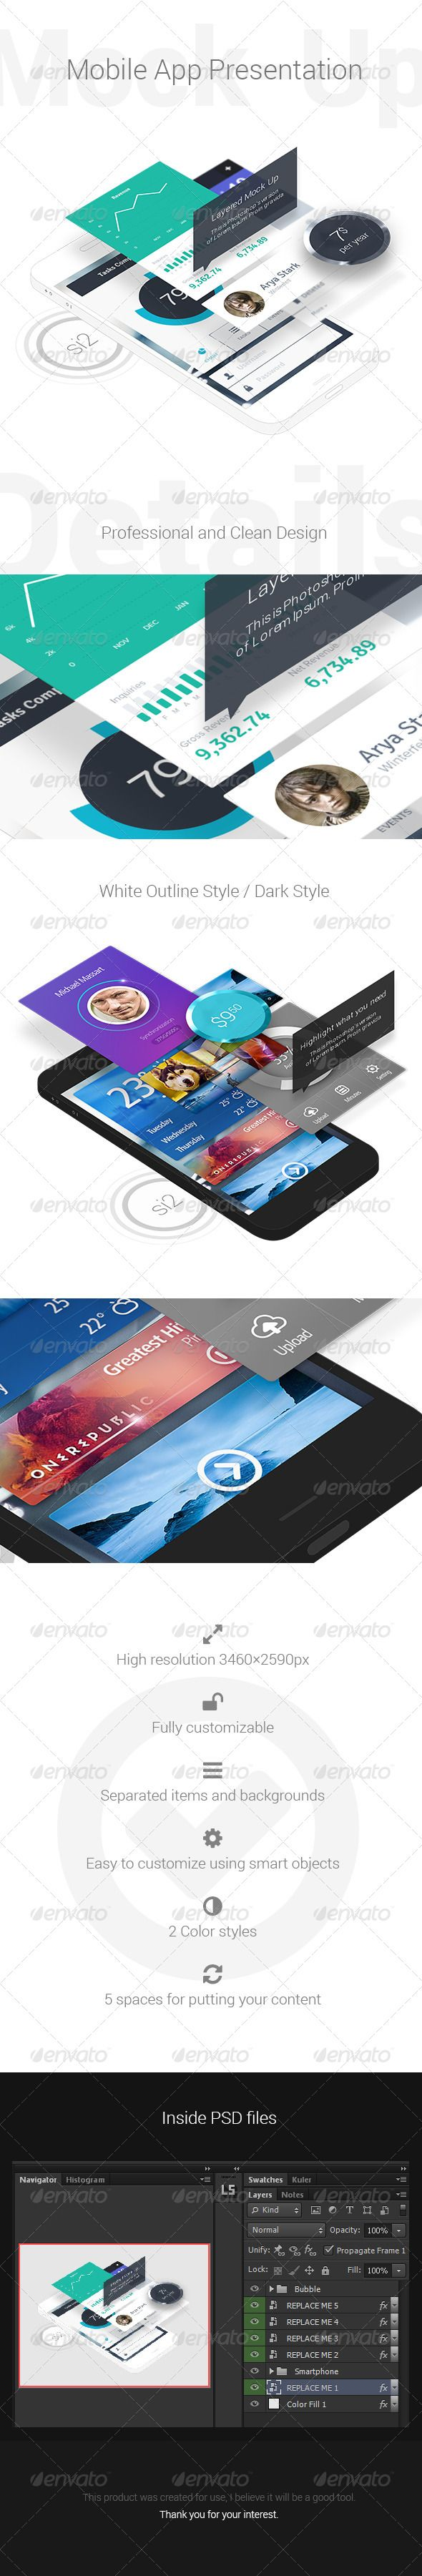 Mobile App Presentation MockUp — Photoshop PSD #layer #black • Available here → https://graphicriver.net/item/mobile-app-presentation-mockup/6269679?ref=pxcr